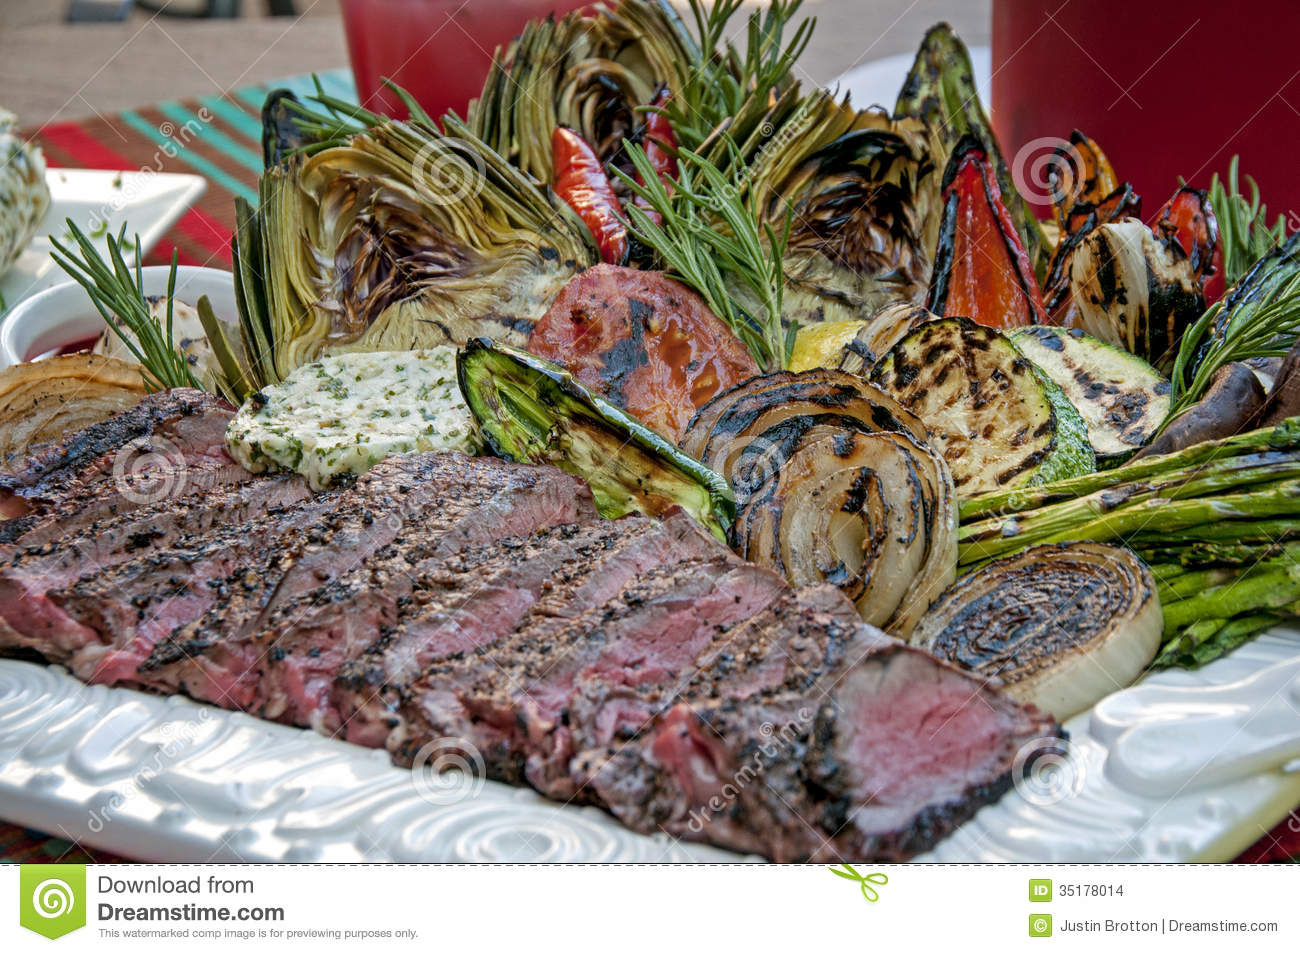 Grilled steak and vegetable spread